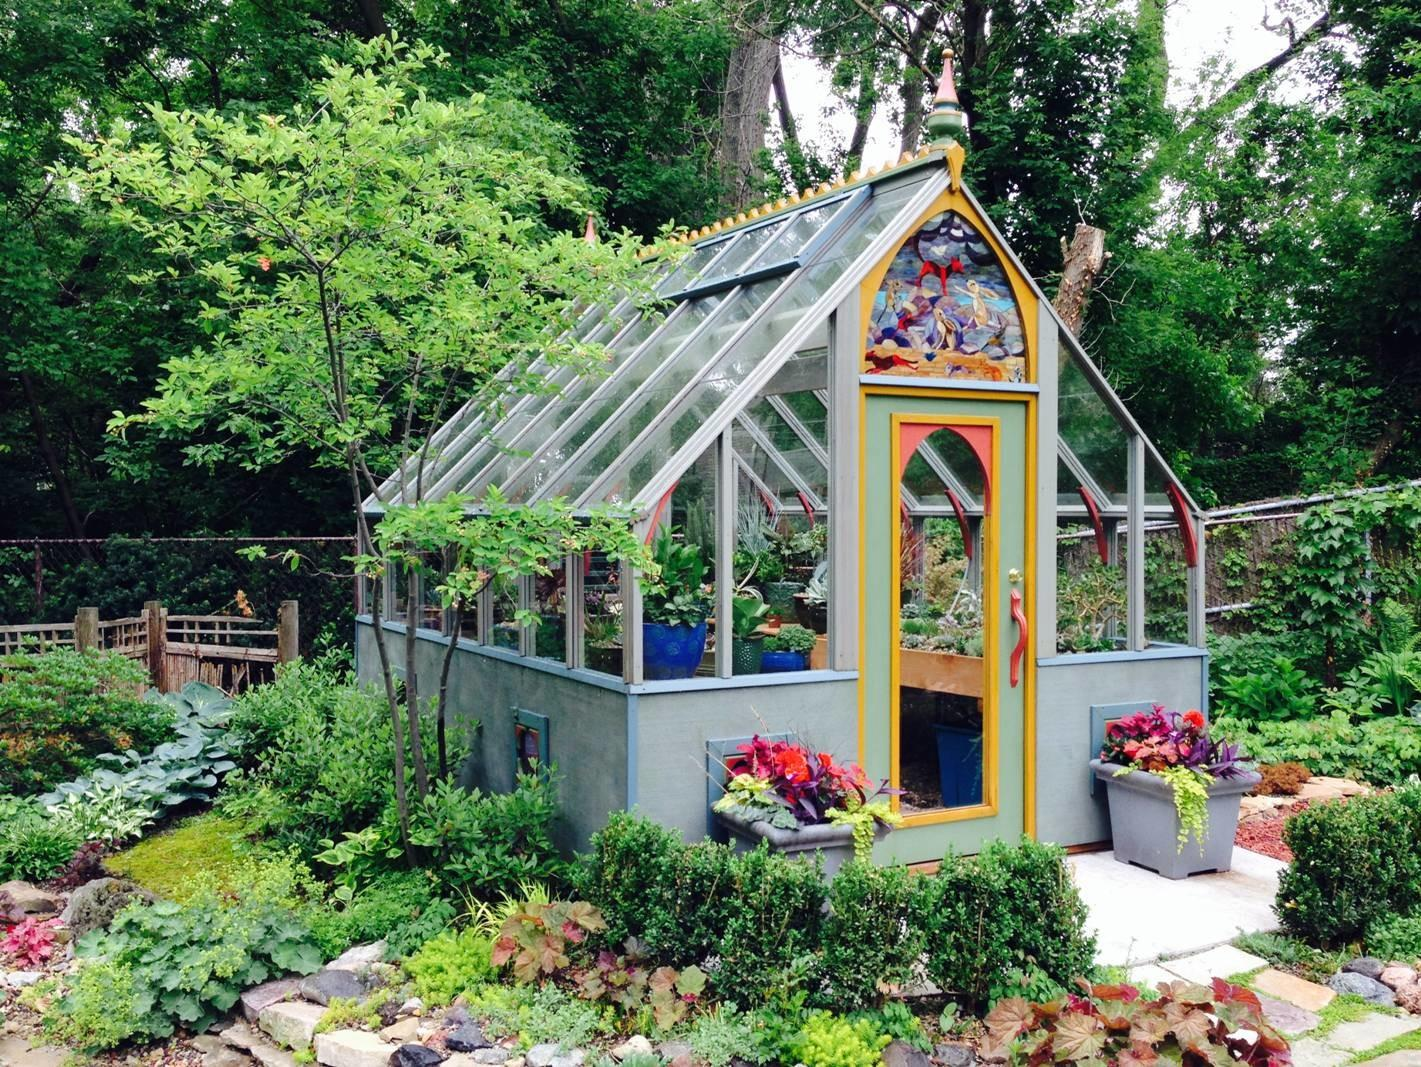 Tudor Colorful Zeck Sturdi Built Greenhouses